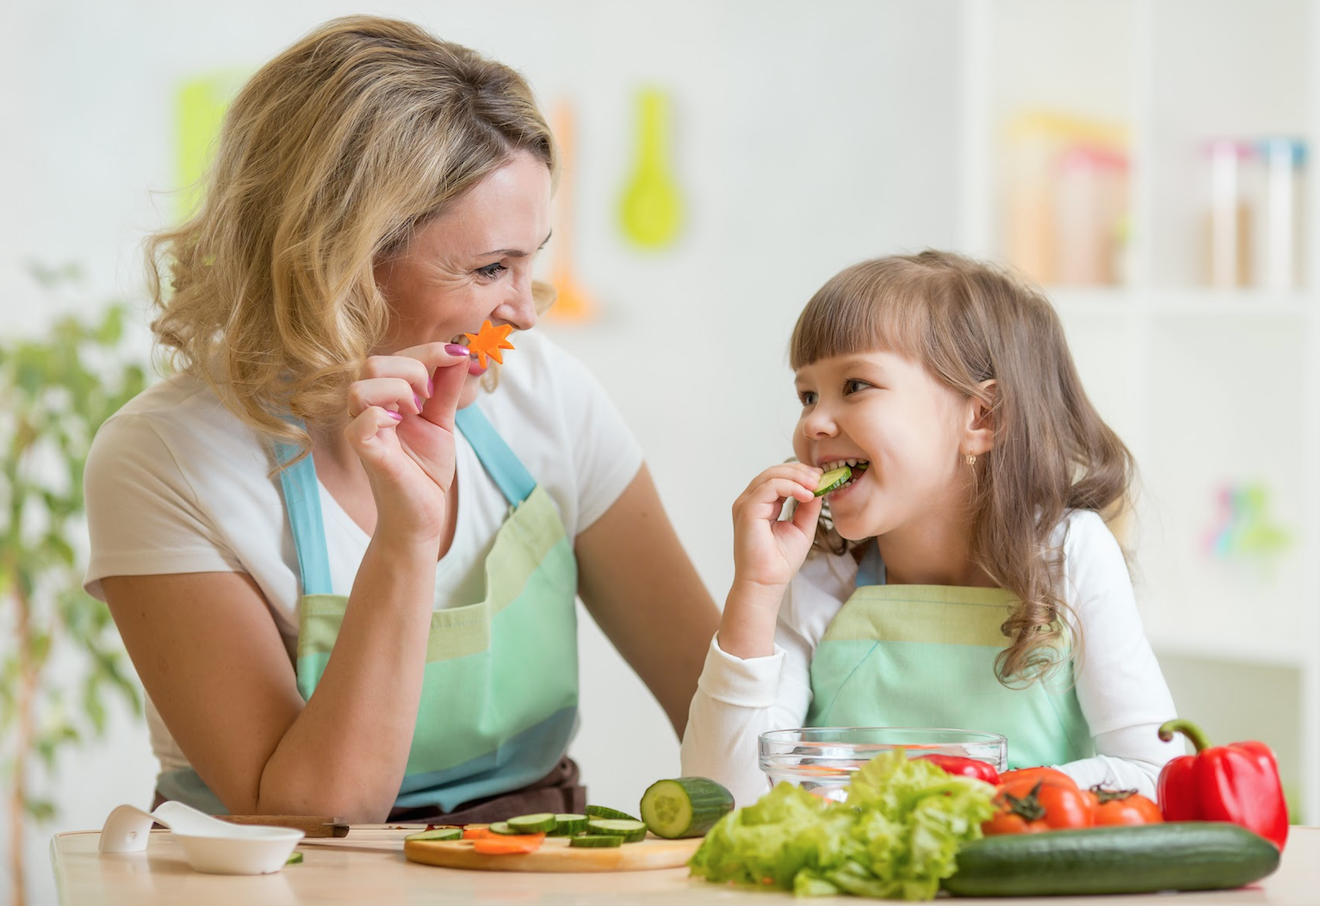 How to Get Your Picky Eater to Eat Healthier